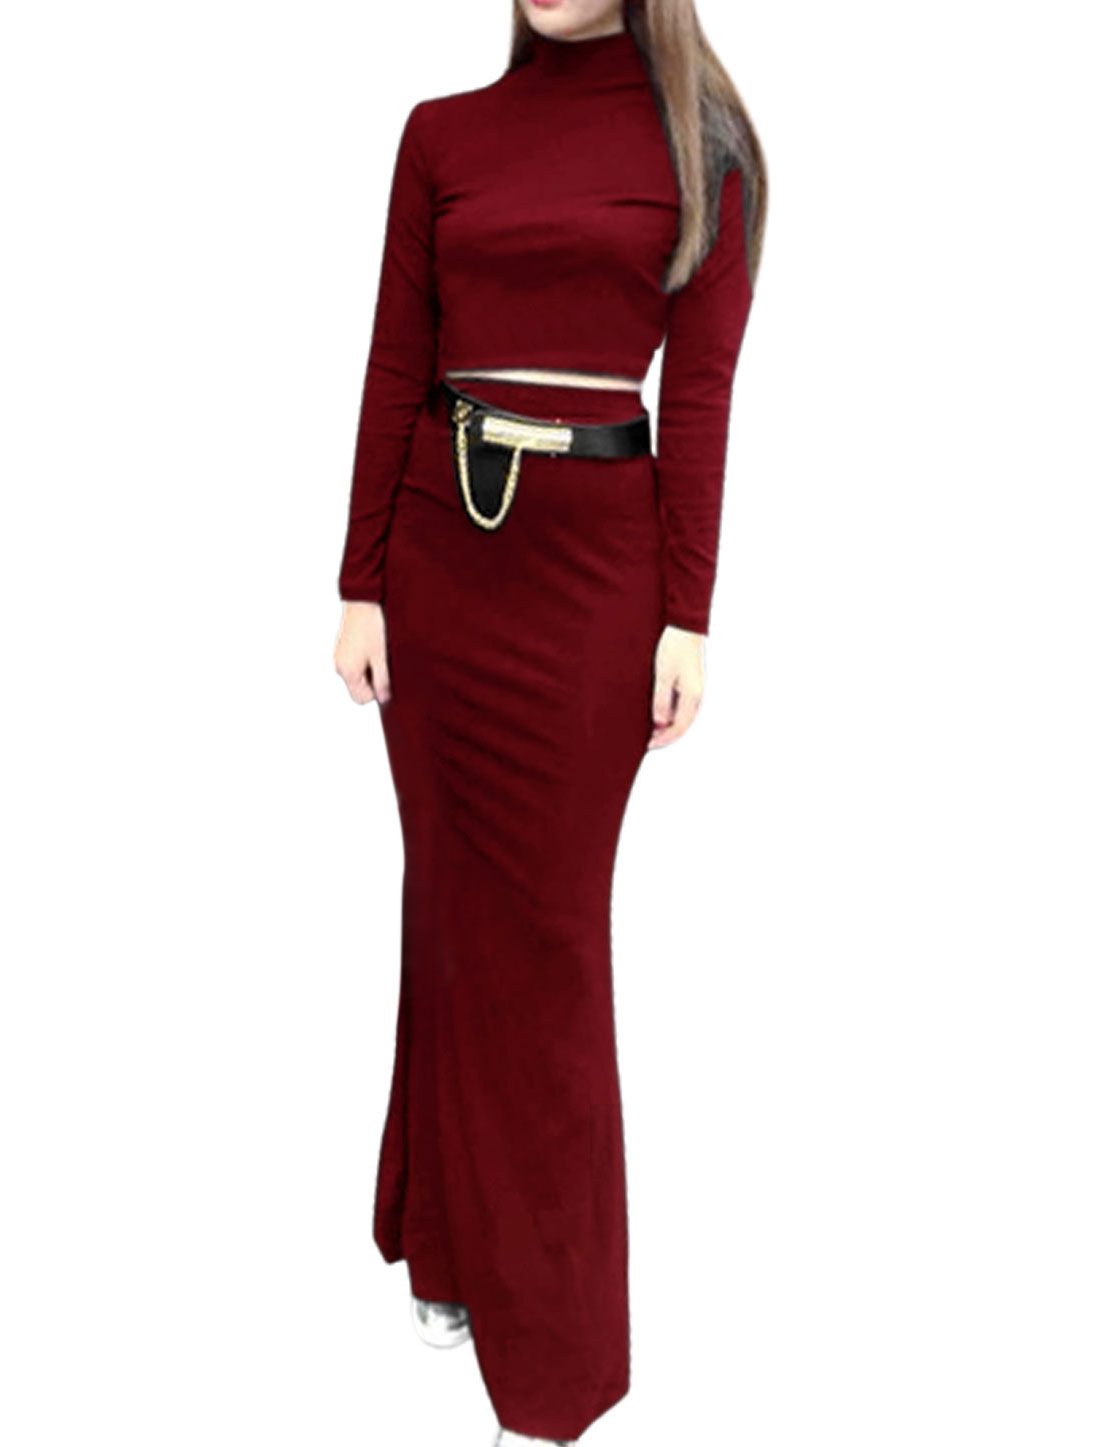 Lady Long Sleeves Belero Shirt w Fish Tail Long Skirt Burgundy M